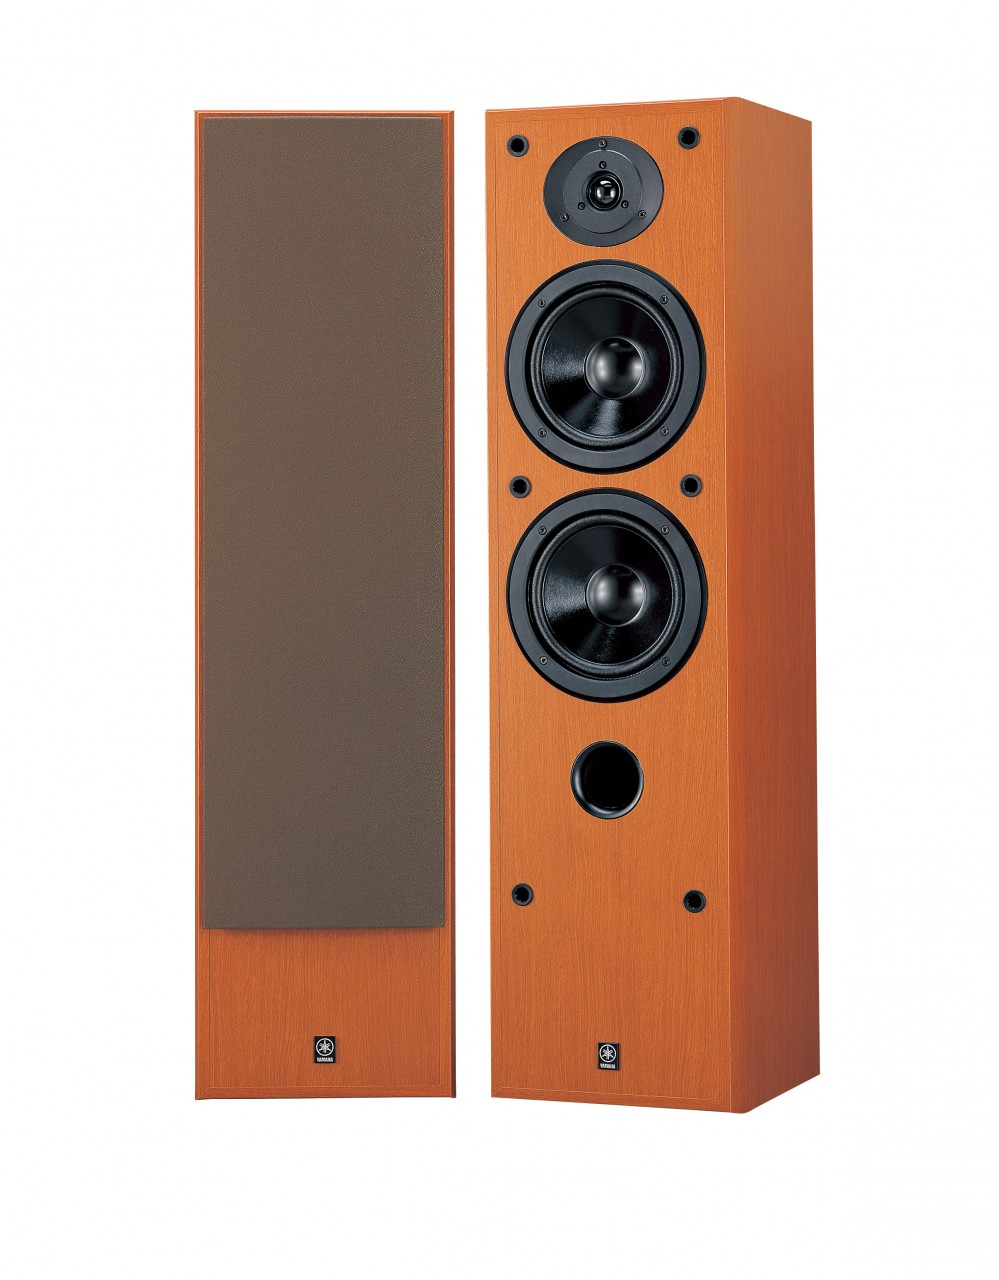 yamaha ns 50 floor standing speakers price in pakistan